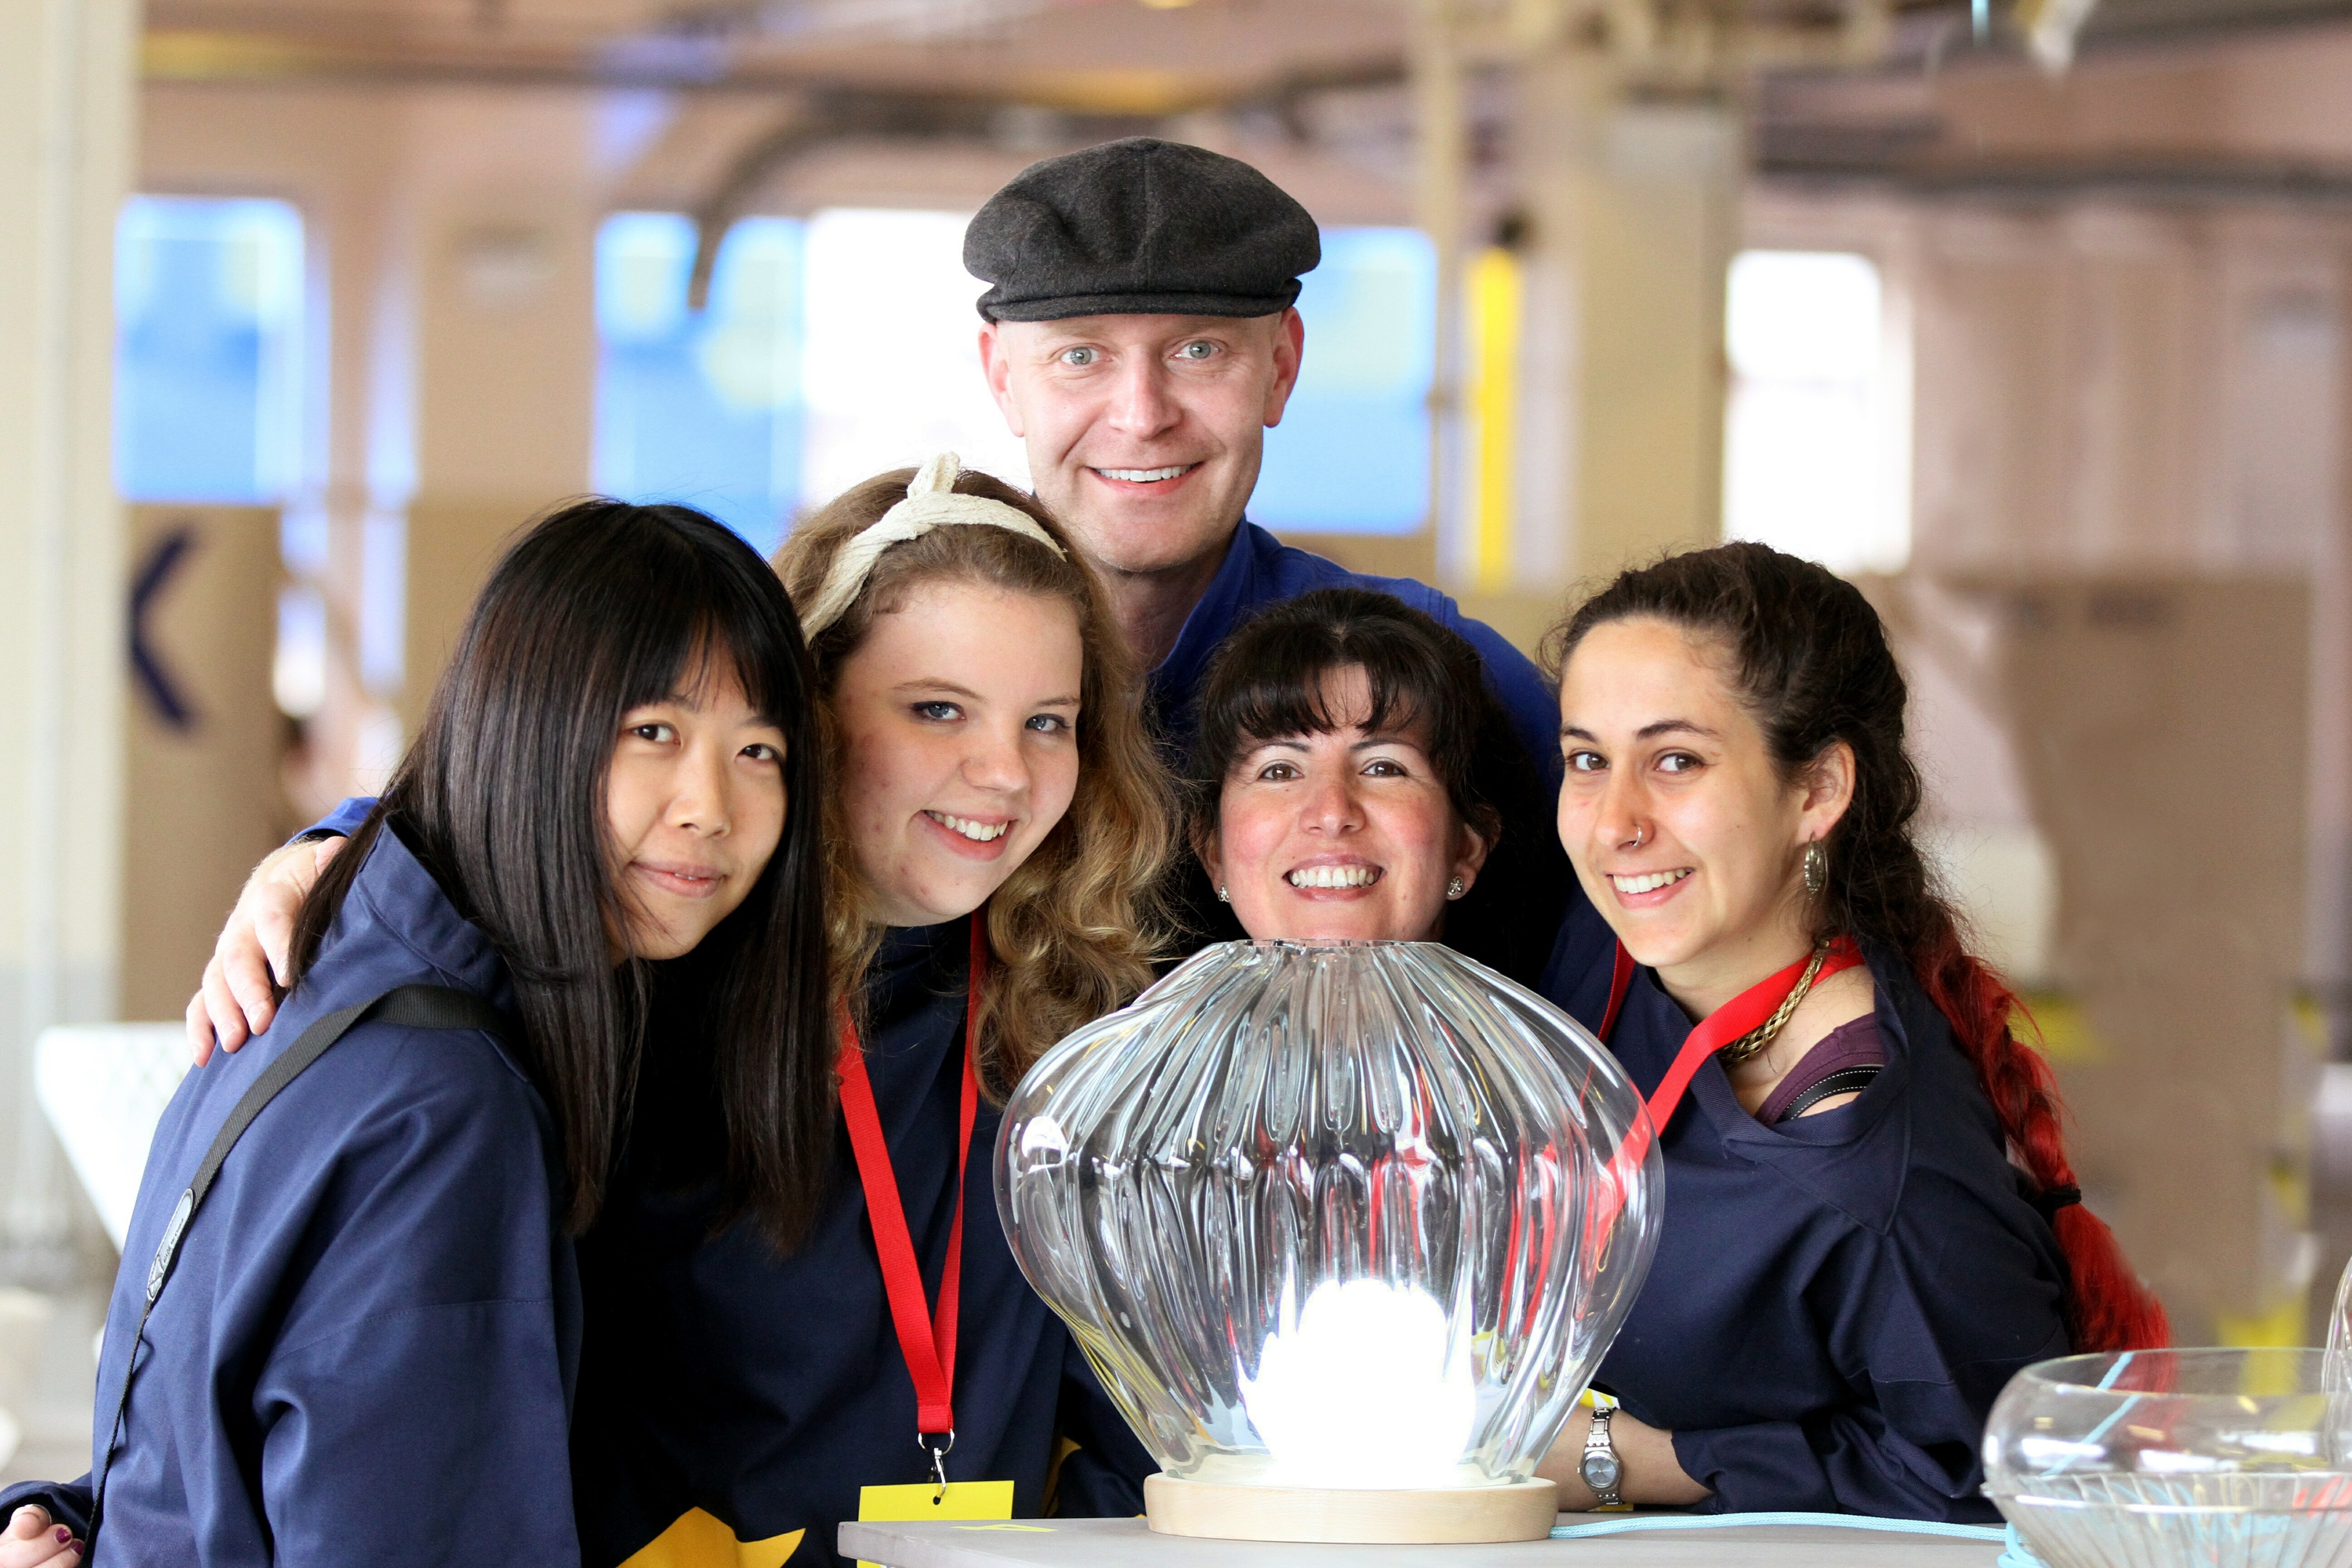 Curator Sion Parkinson with festival volunteers Shaoyuan Wang, Hannah Richardson, Nalma Todd and Angelica Russell.